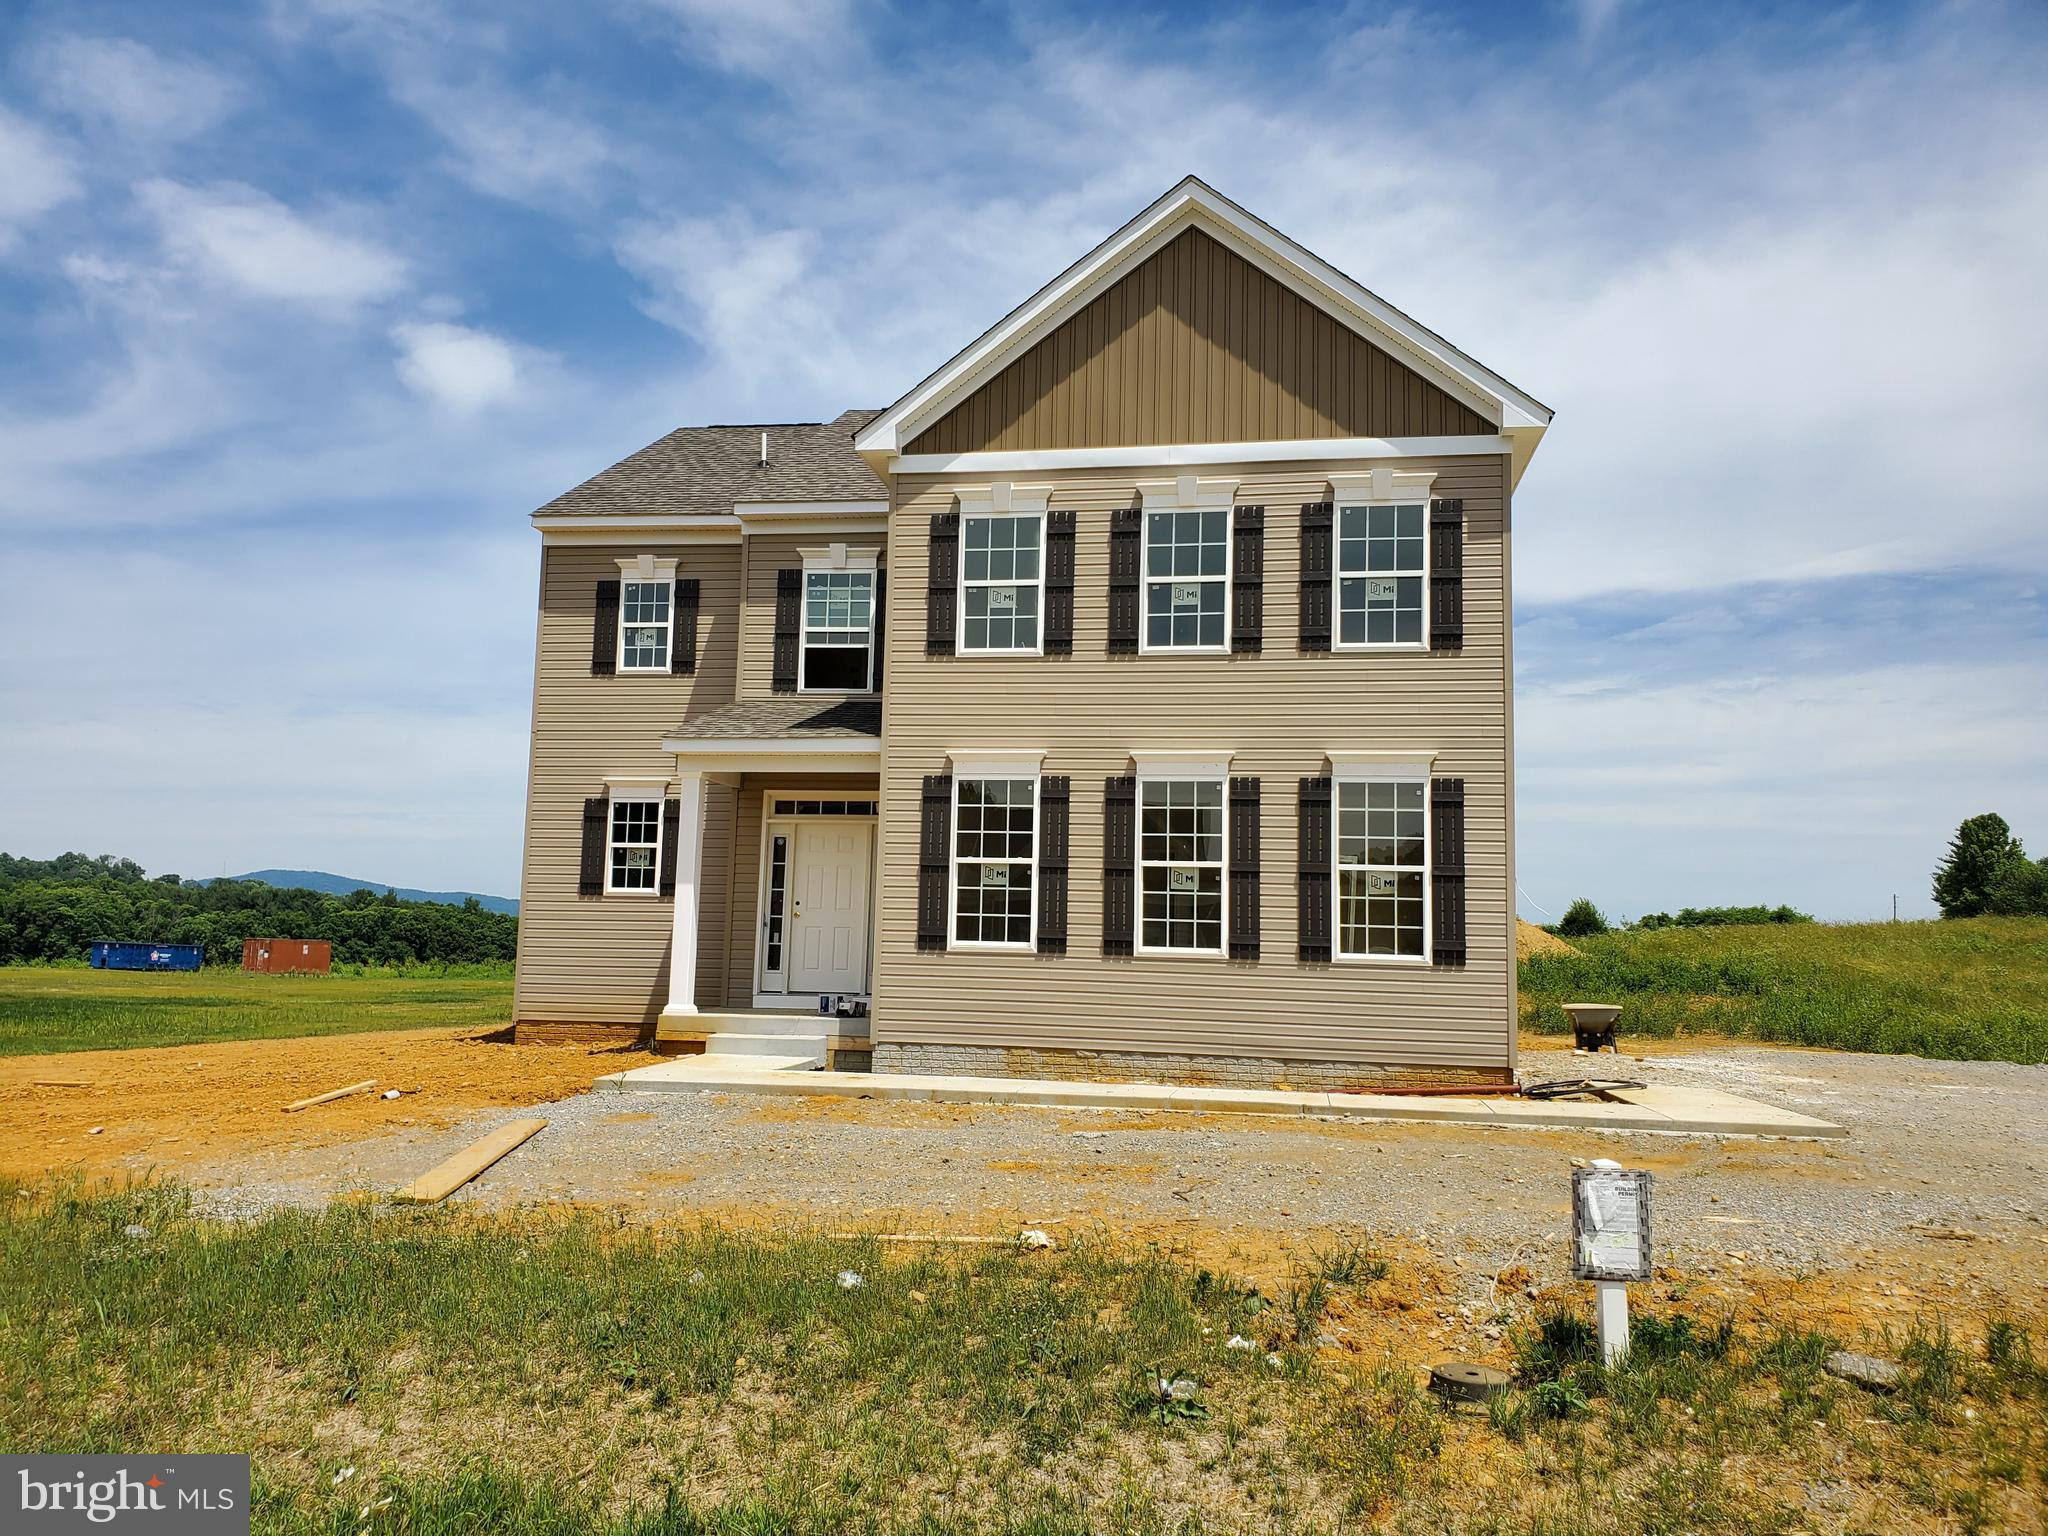 460 DORCHESTER DRIVE, FALLING WATERS, WV 25419